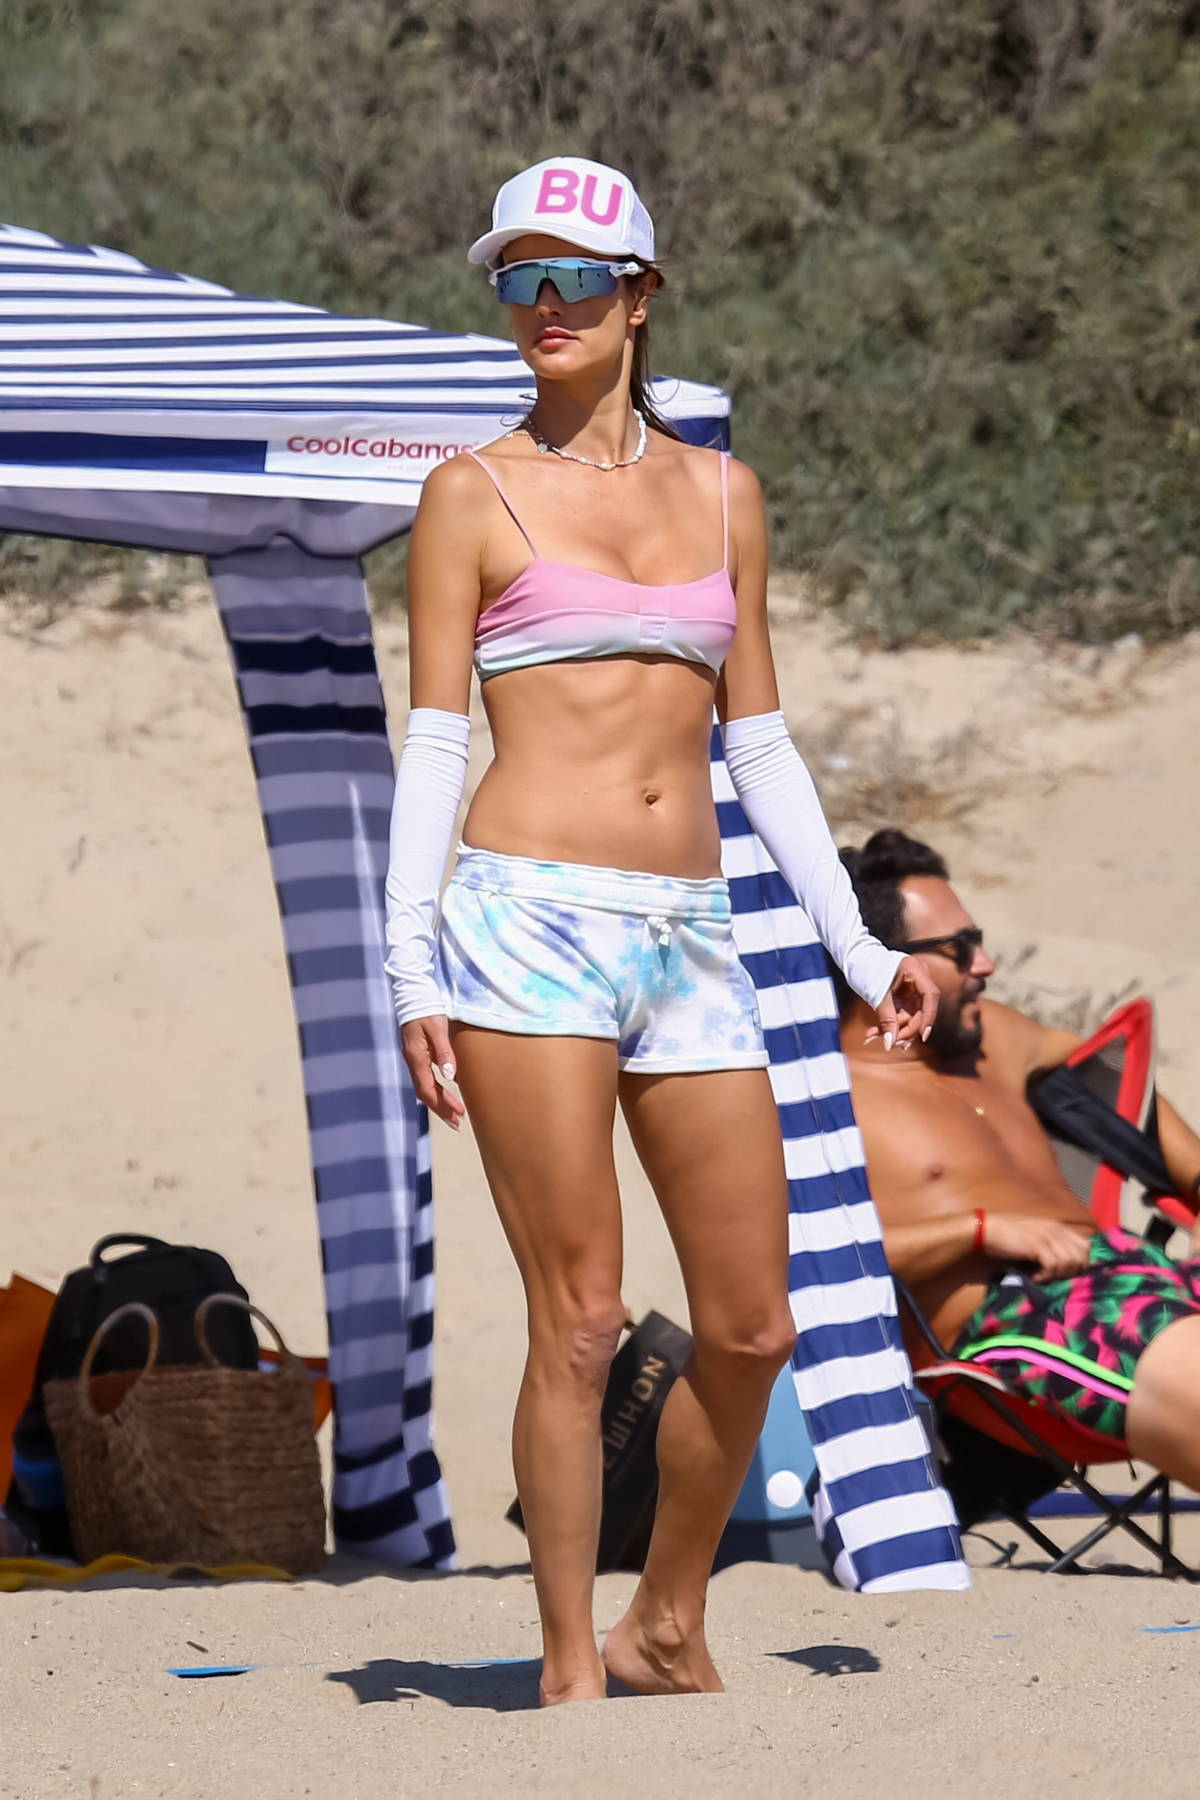 Alessandra Ambrosio displays her incredible bikini body during another day of beach volleyball with friends in Santa Monica, California